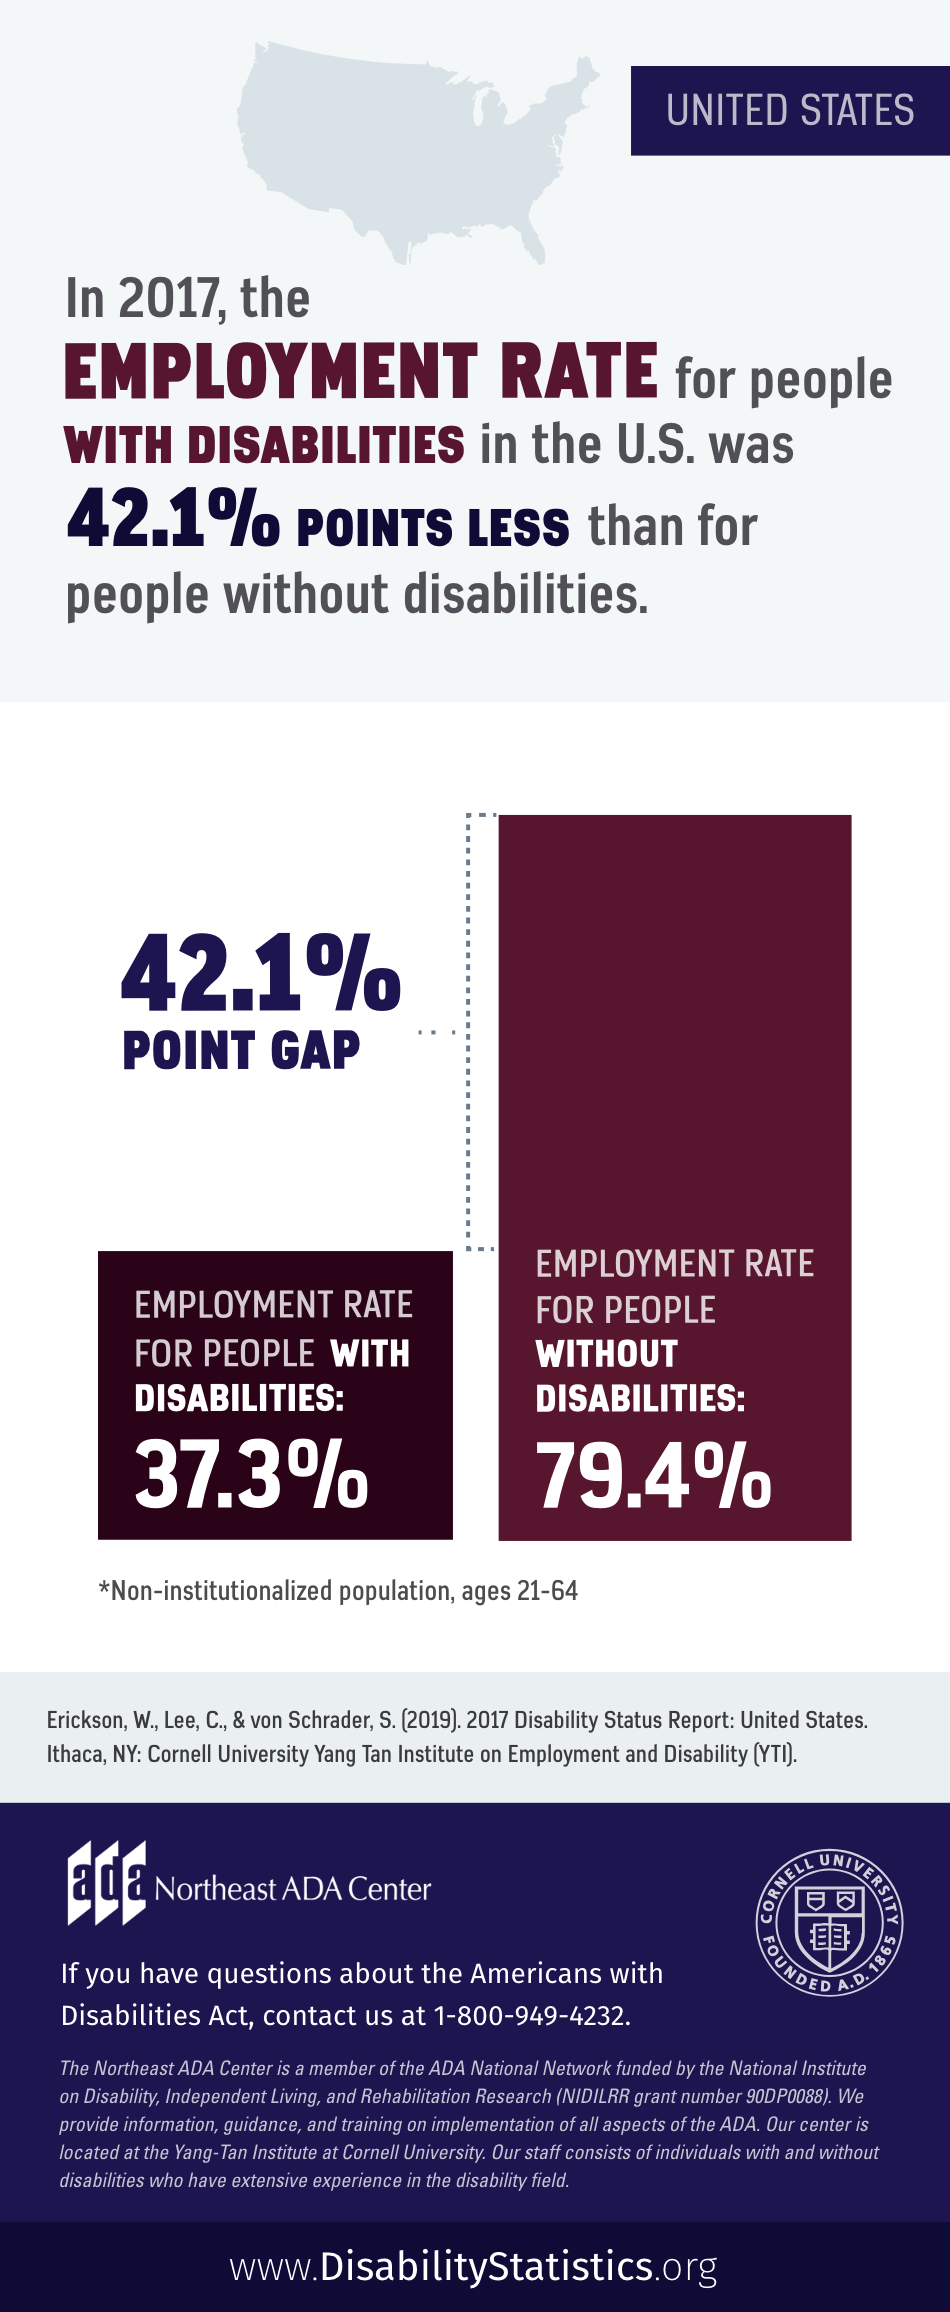 Infographic featuring text on top of an outline of a U.S. map along with a bar graph showing employment rates for people with disabilities and people without disabilities in the U.S.: